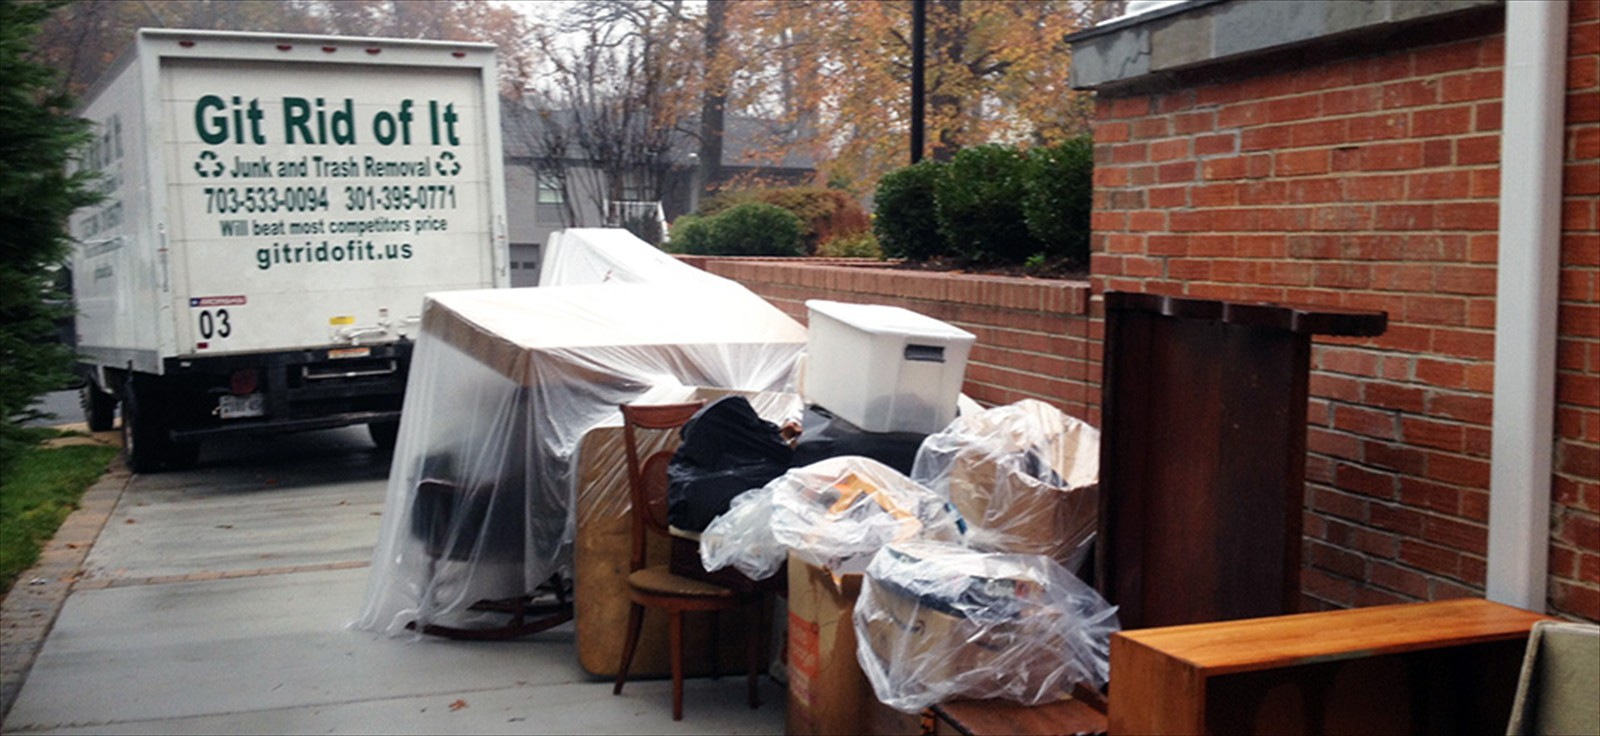 Junk Removal Virginia Washington Dc Fairfax Falls